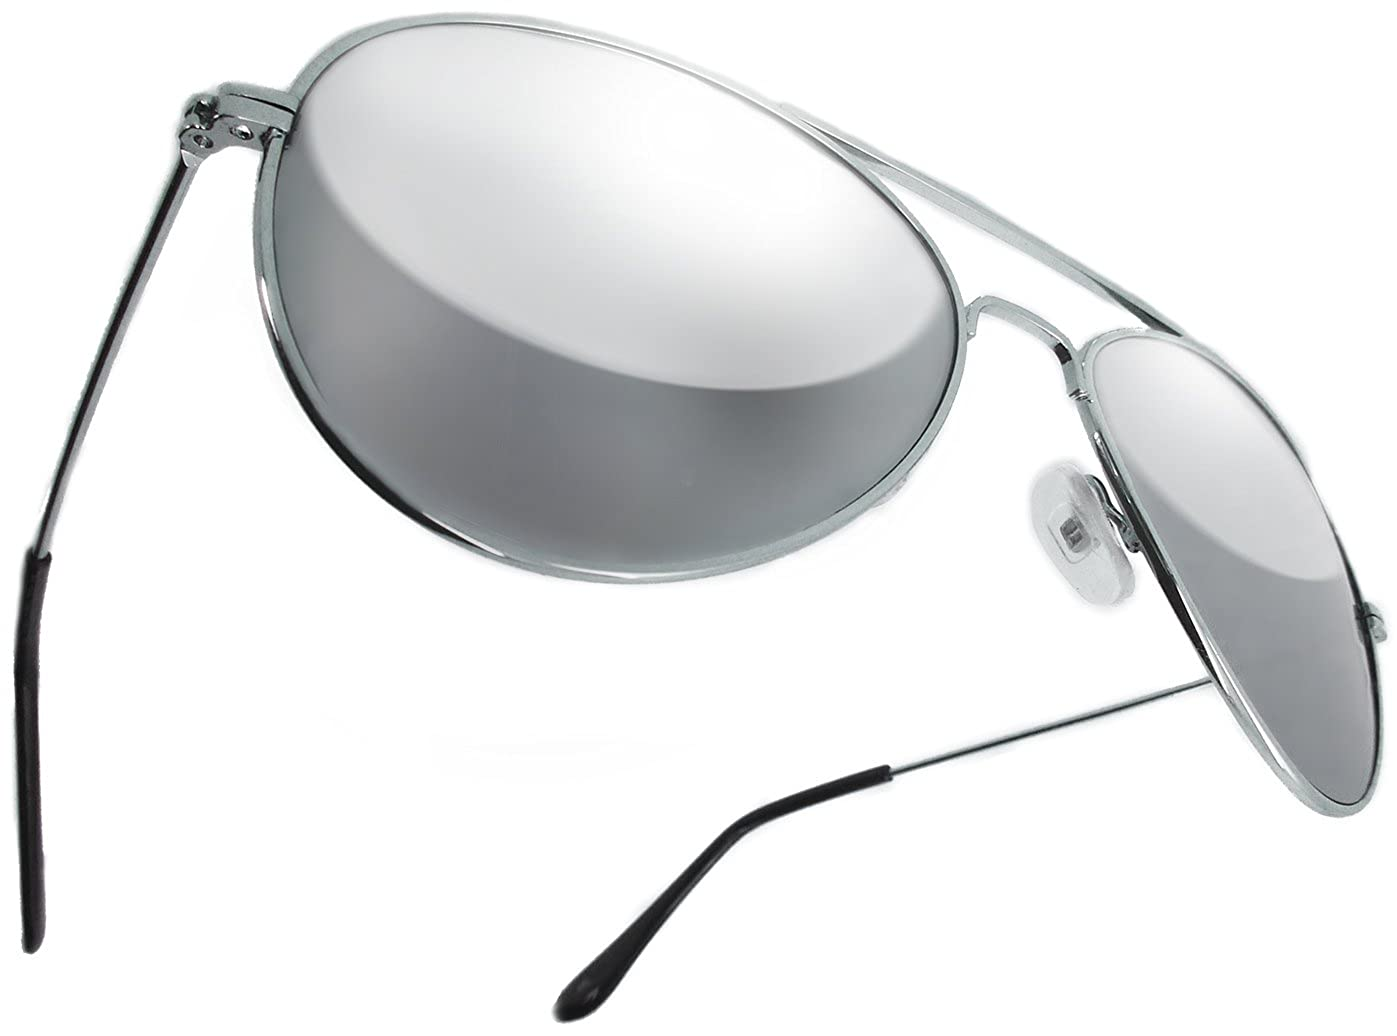 63ee42b2ab0 Aviator 70 s Style Classic Full Mirror Chrome Silver Sunglasses with  distortion free GLASS lens  Amazon.co.uk  Clothing